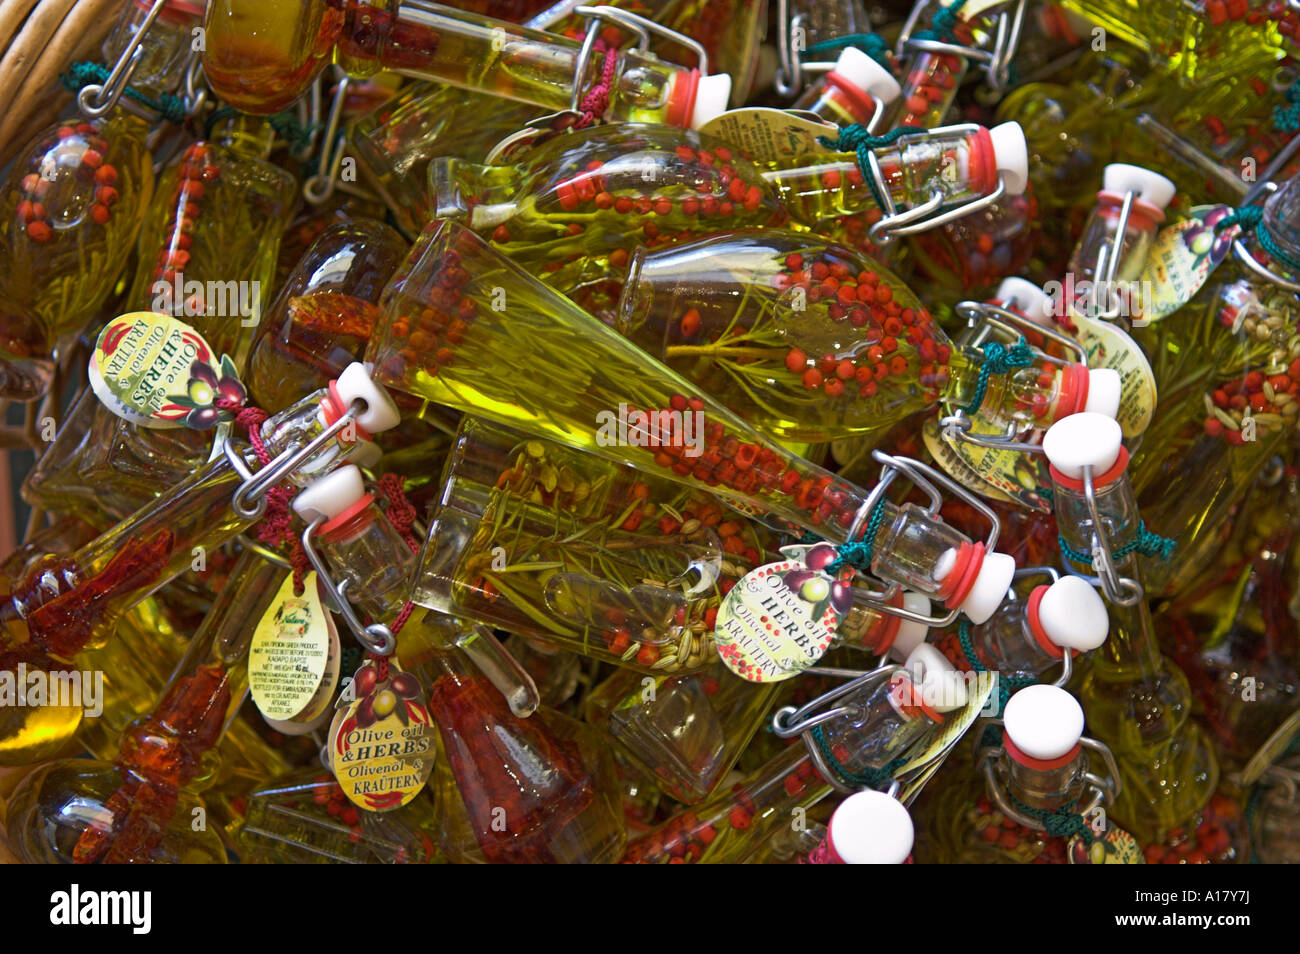 Salad Dressing Store Stock Photos & Salad Dressing Store Stock ...